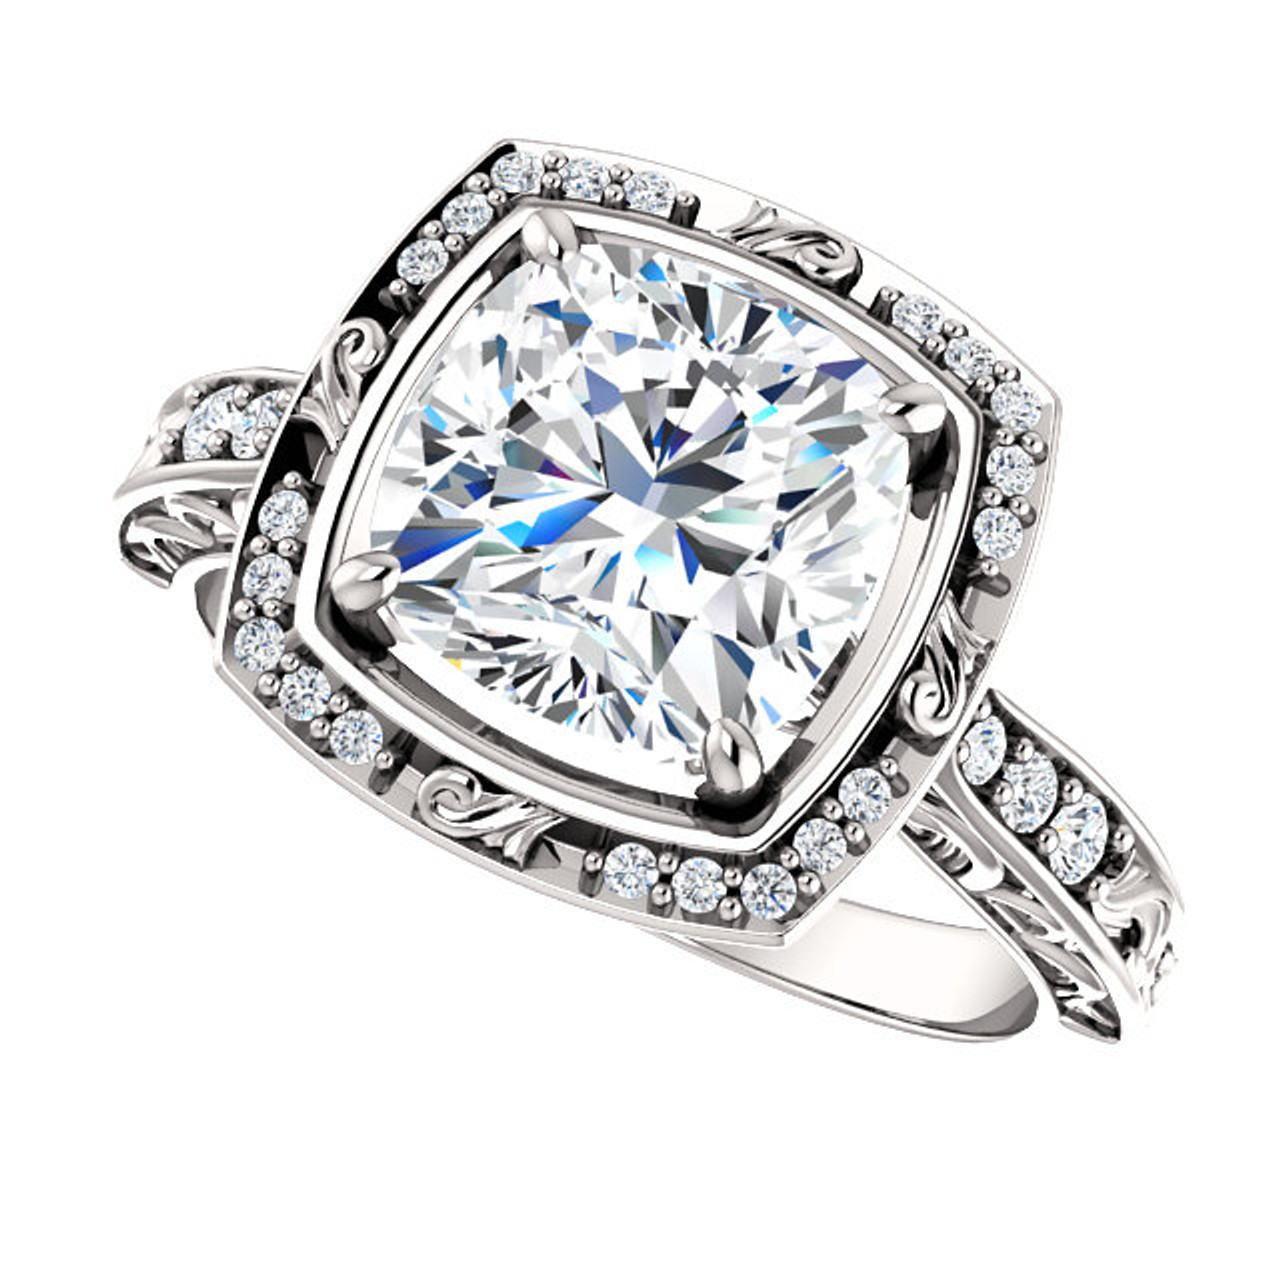 fc45aa9c9b63c The Debbie Ring Series - Forever One Moissanite Cushion Cut 8mm = 2.40CT  Engagement Ring - Platinum